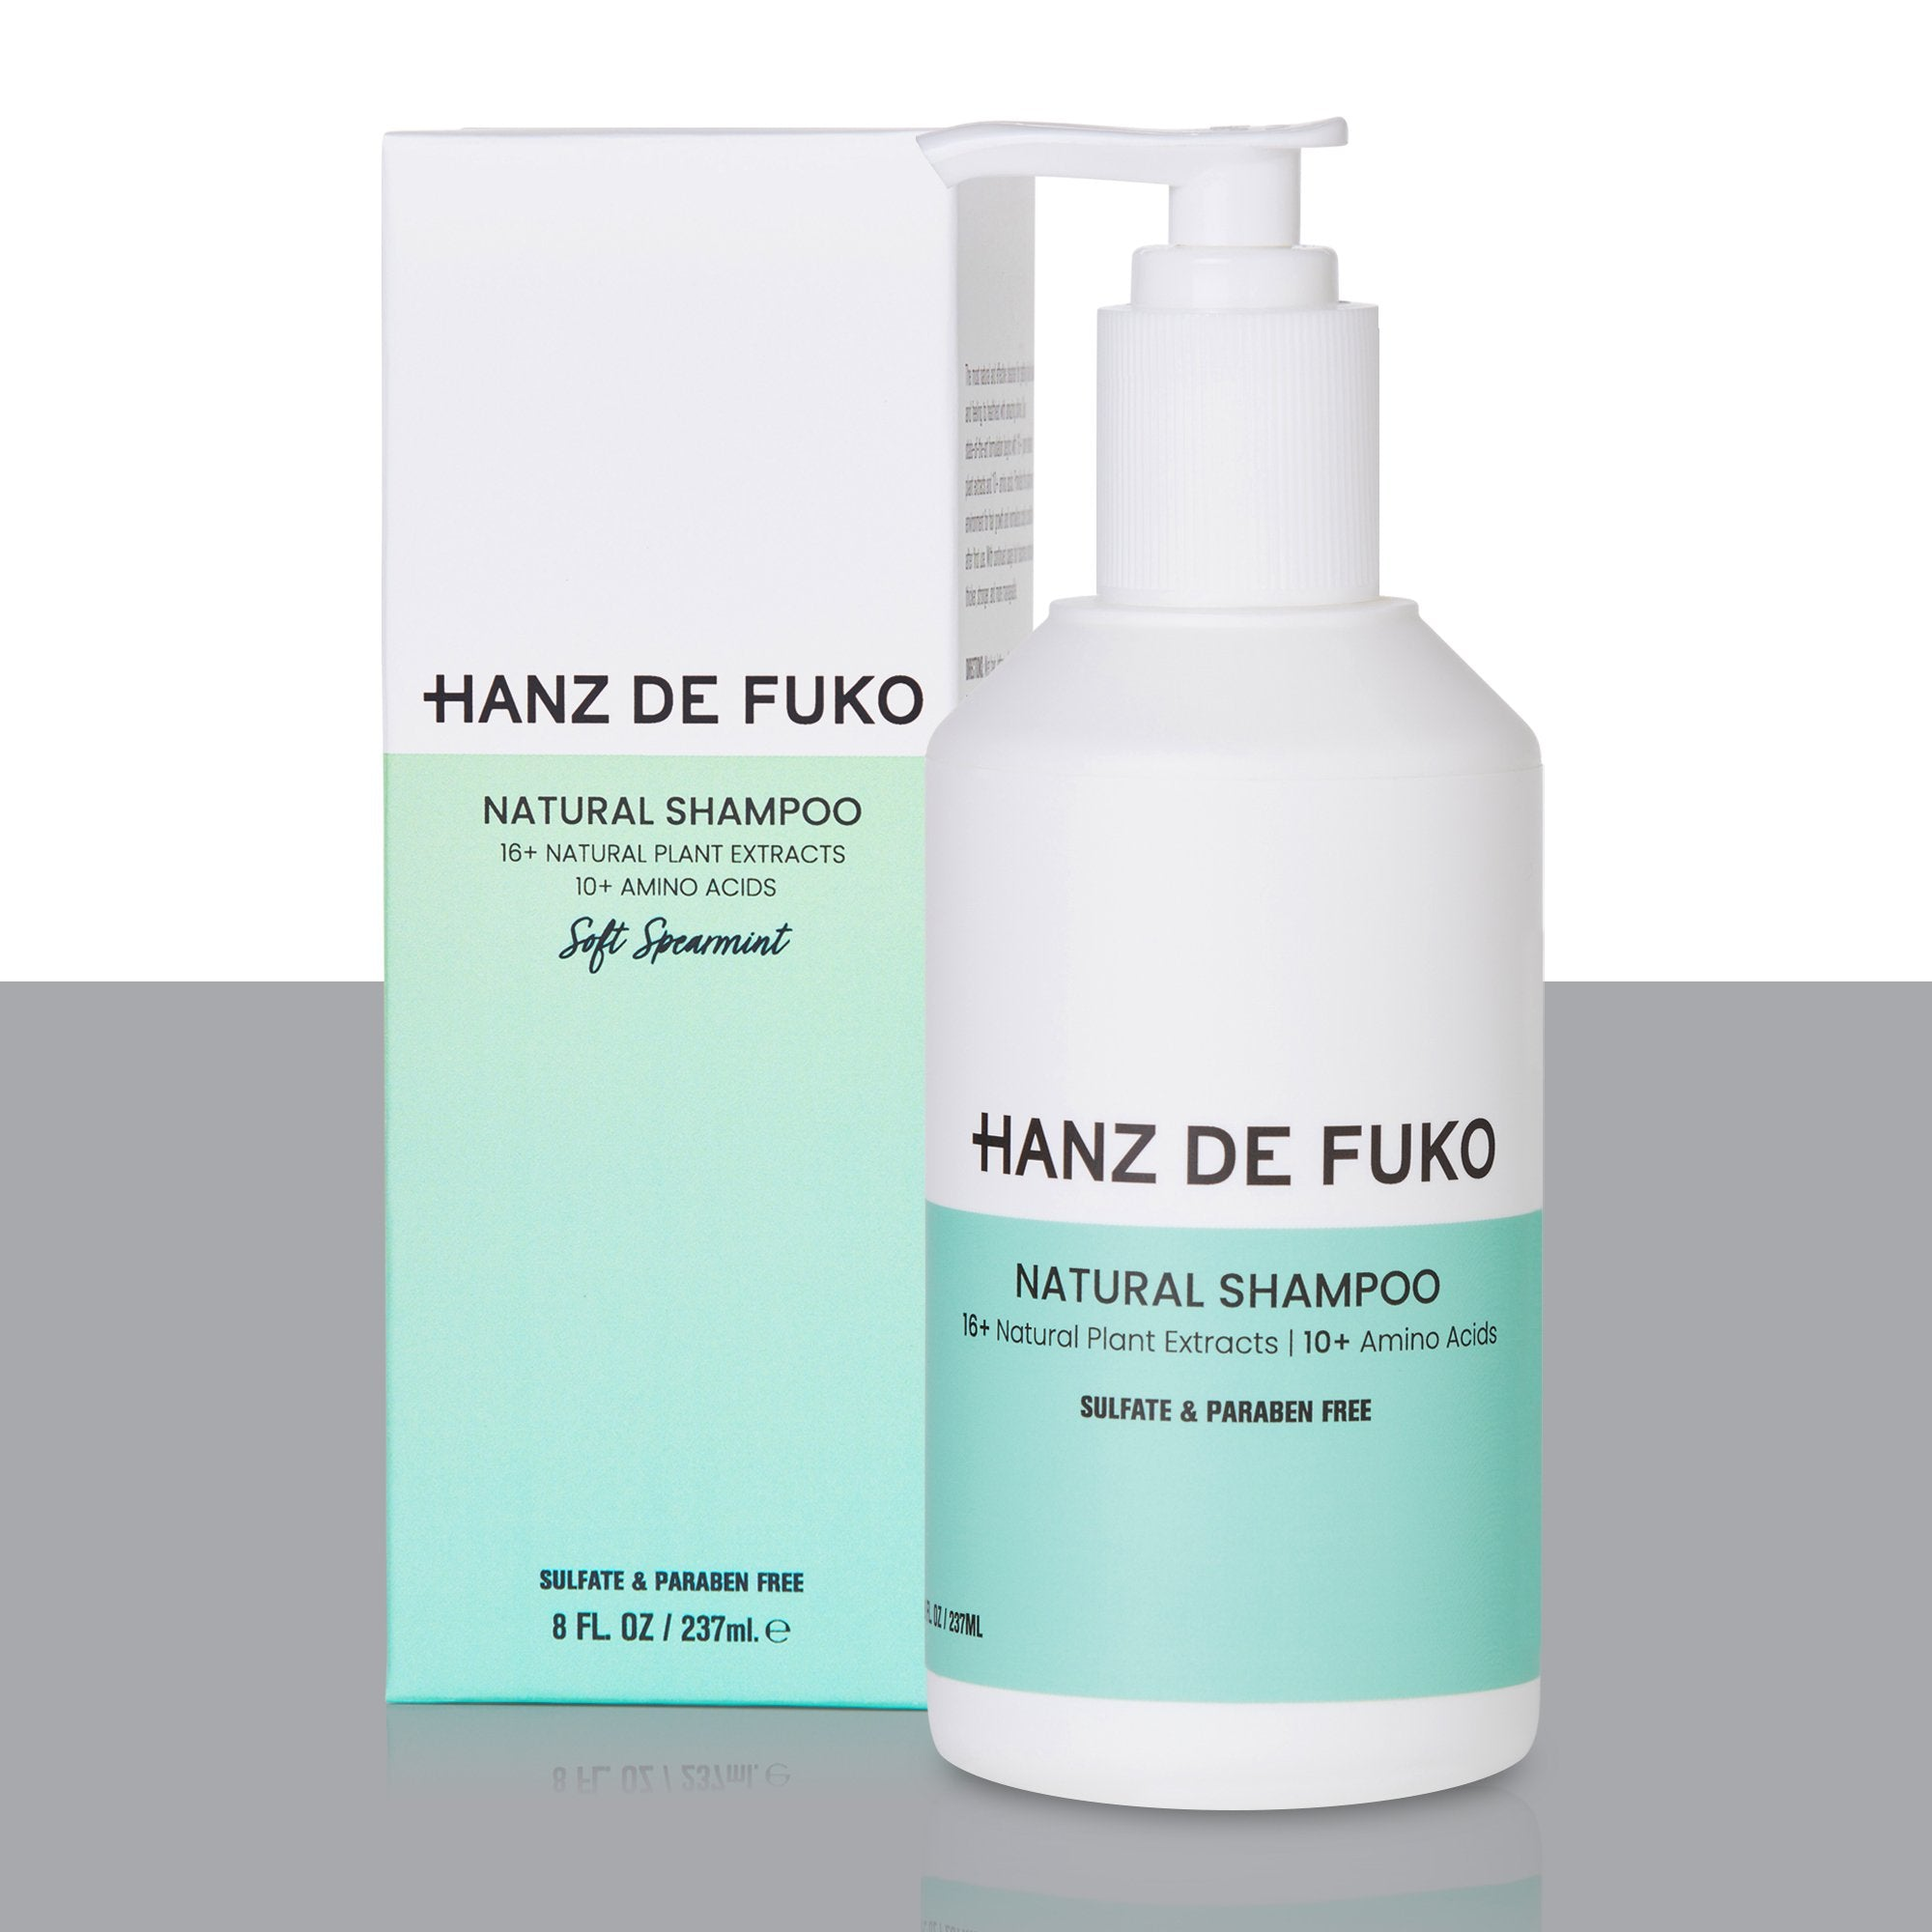 HANZ DE FUKO Natural Shampoo 237ml